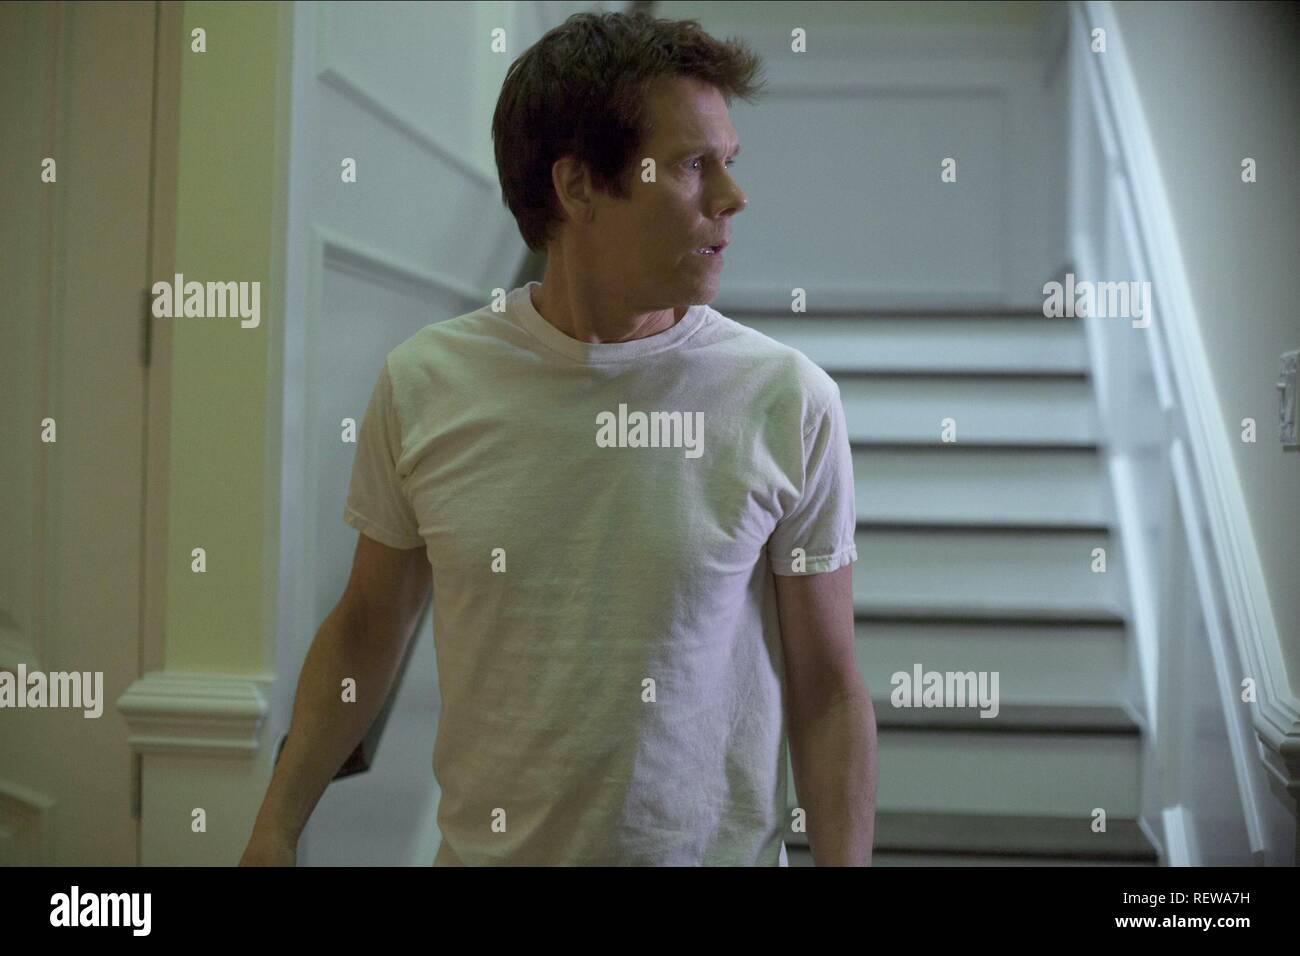 KEVIN BACON THE DARKNESS (2016) - Stock Image